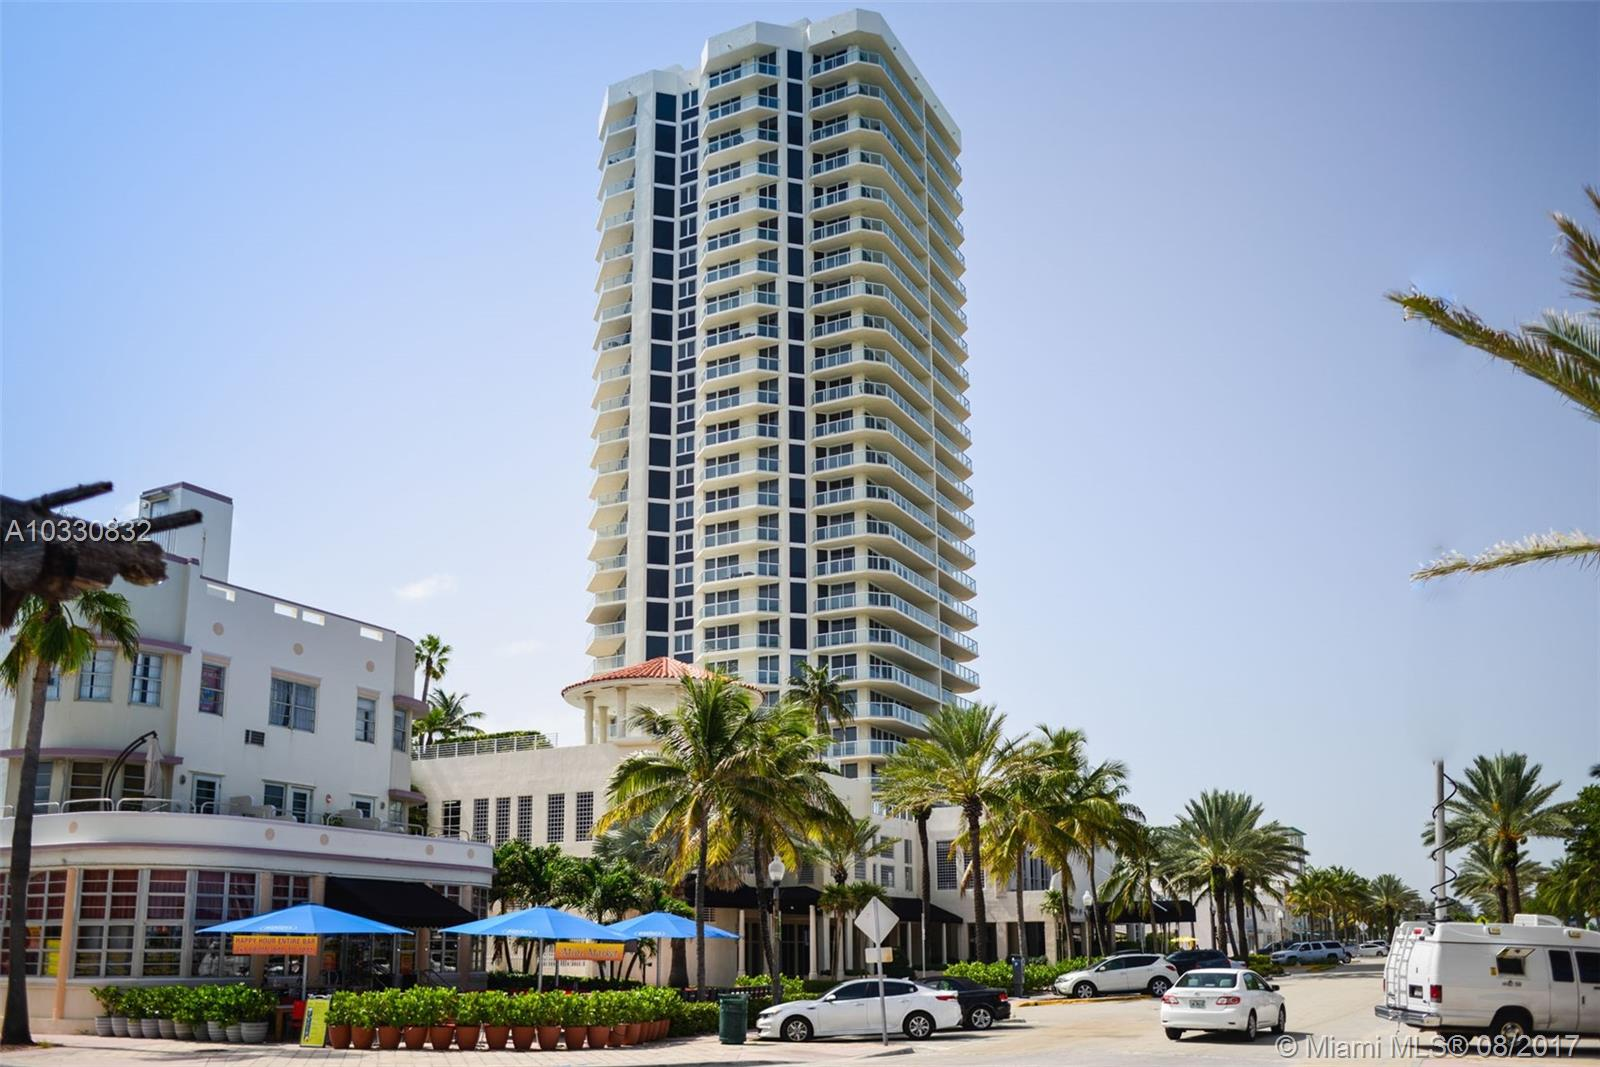 for sale 7330 ocean terrace 21 d miami beach fl